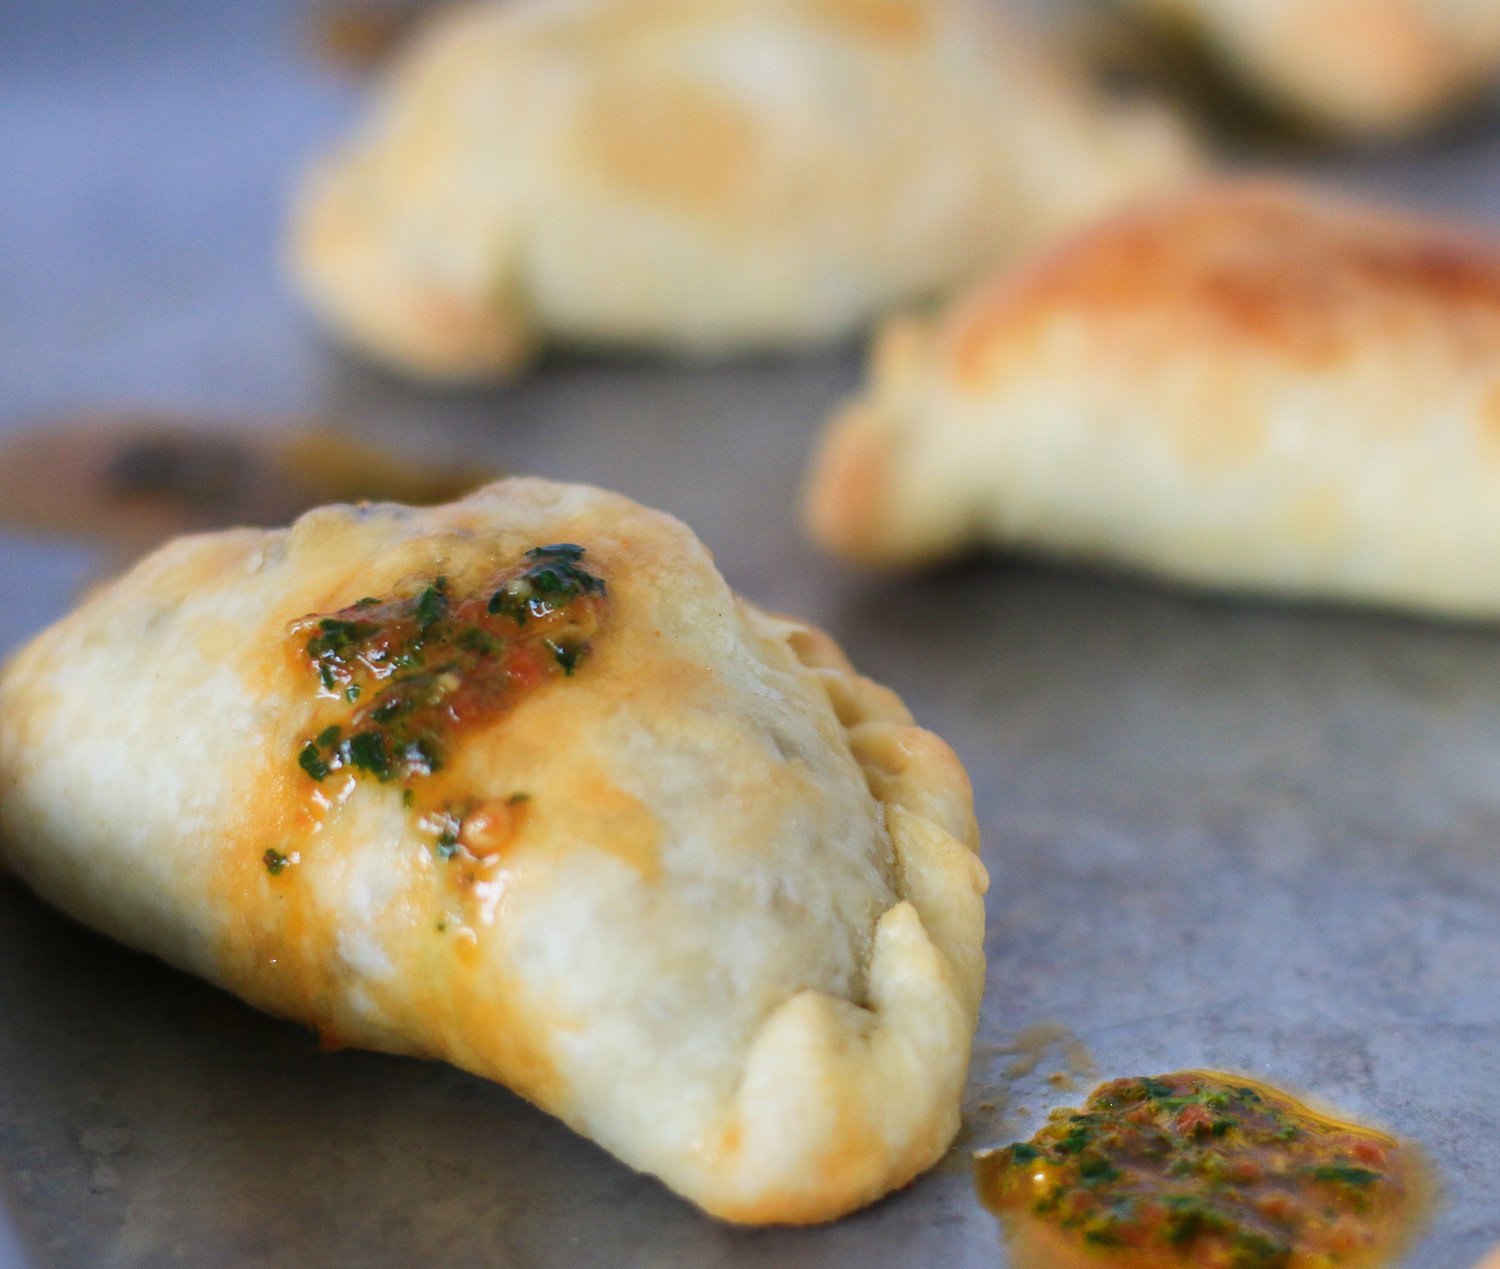 Argentinean Empanadas with Roasted Red Pepper Chimichurri